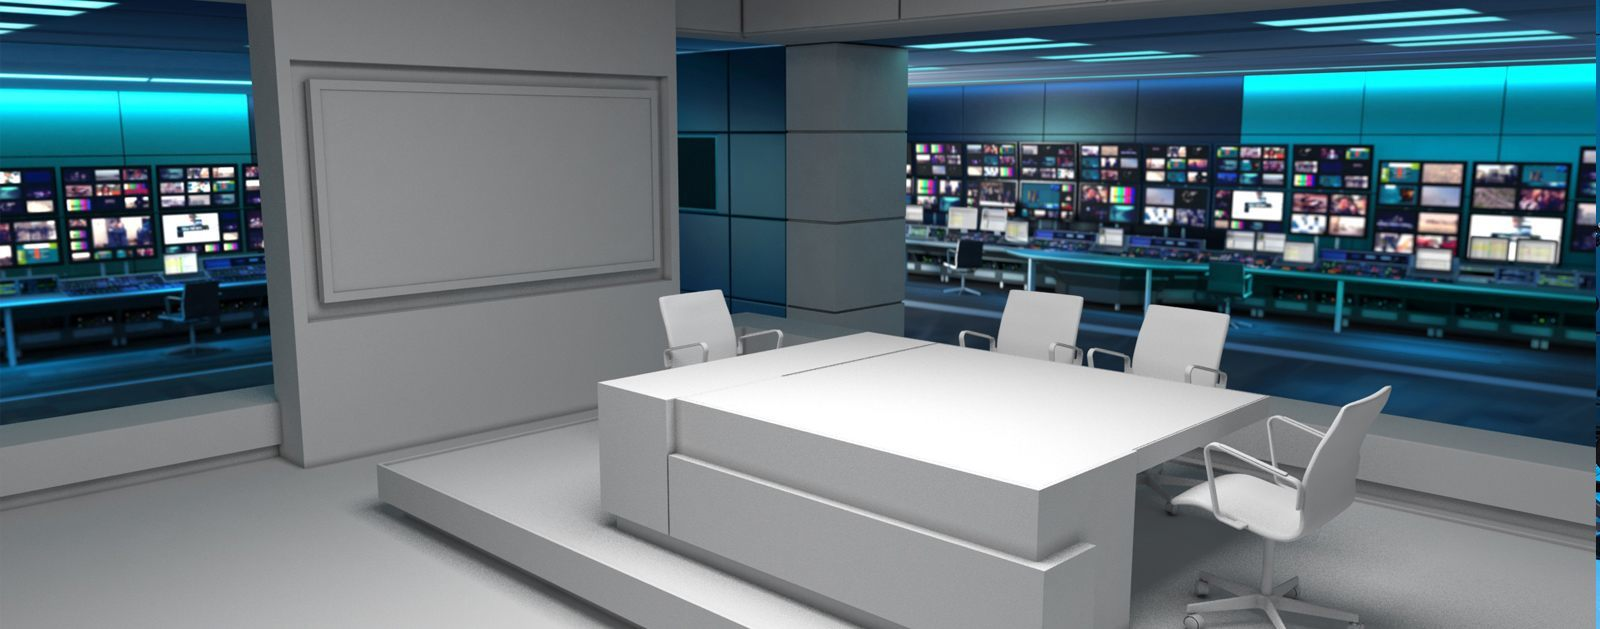 Virtual Set for ITV News